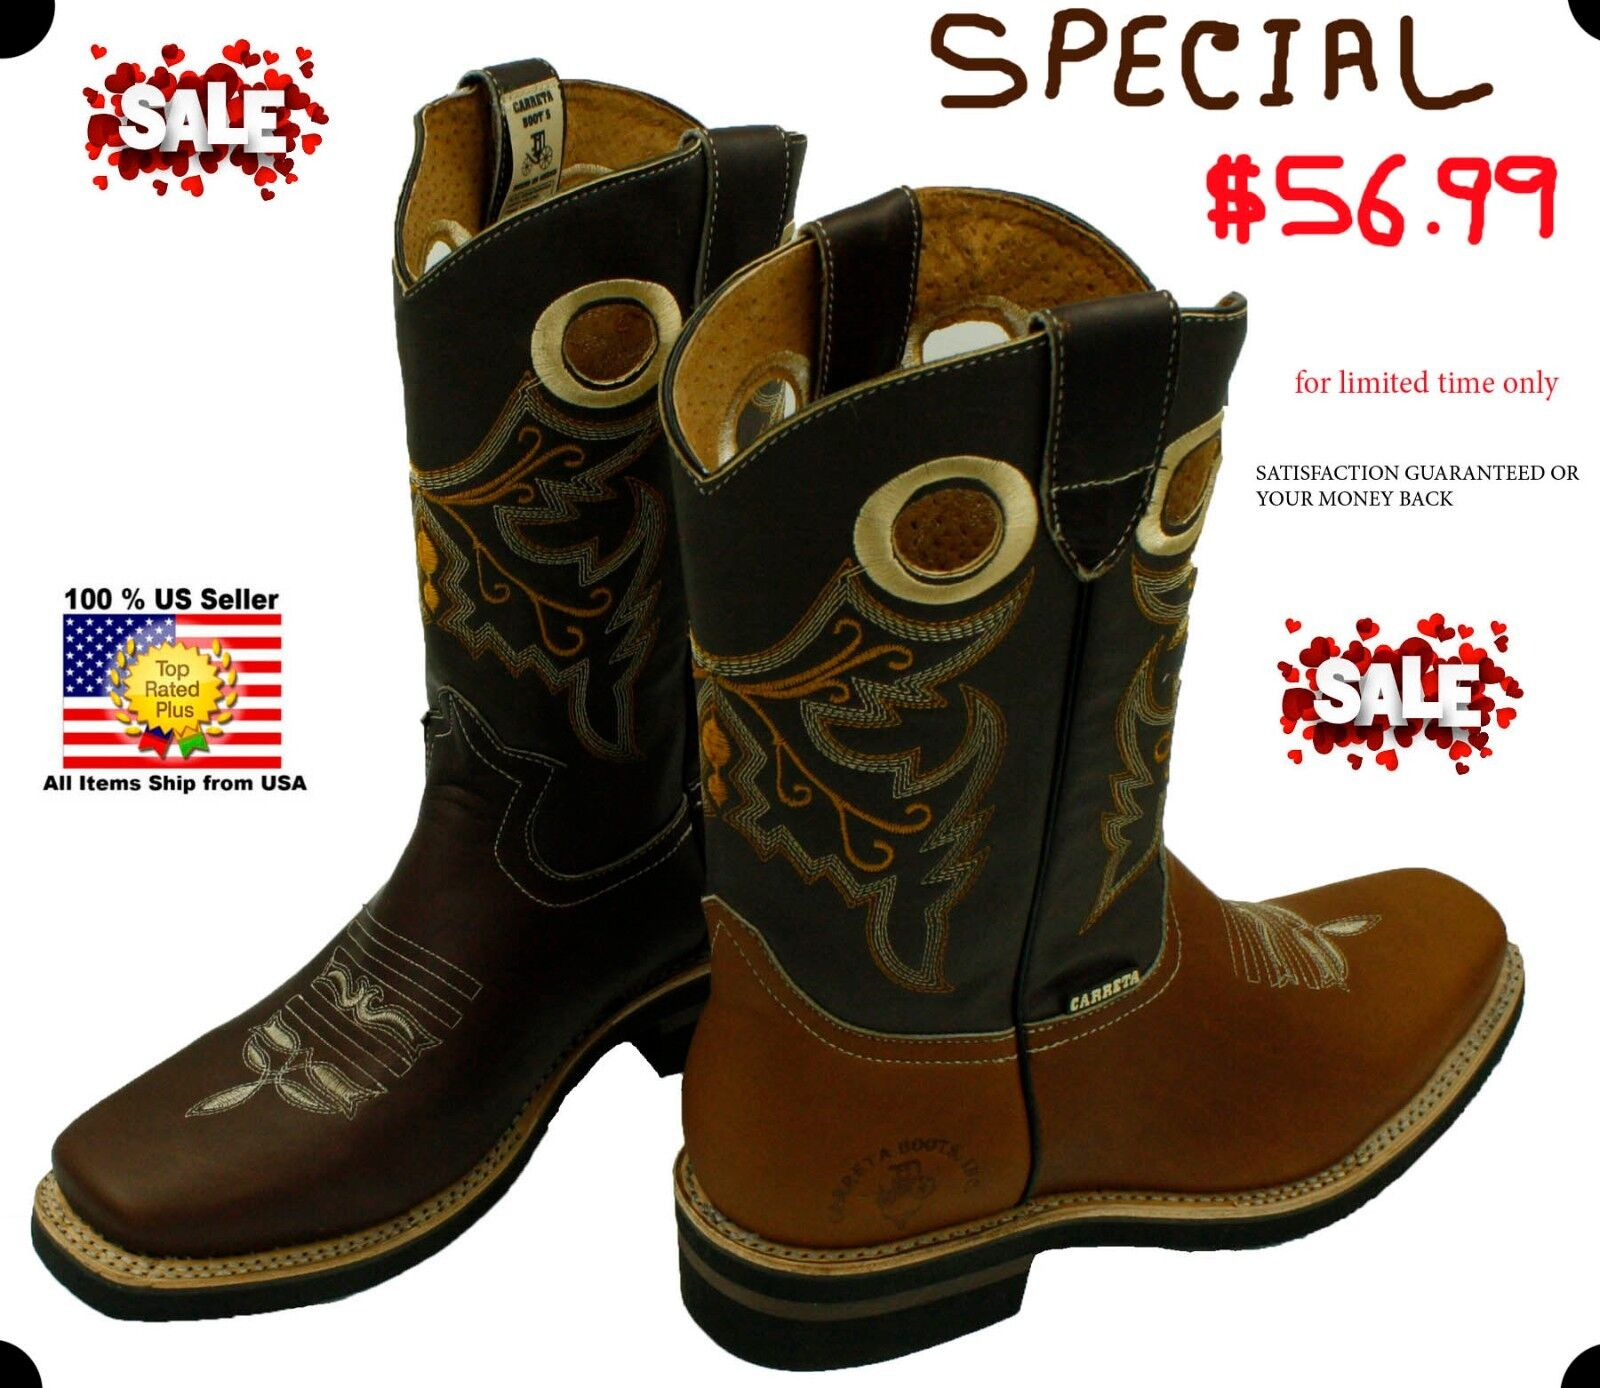 MEN'S RODEO COWBOY BOOTS GENUINE LEATHER WESTERN SQUARE TOE BOTAS-601